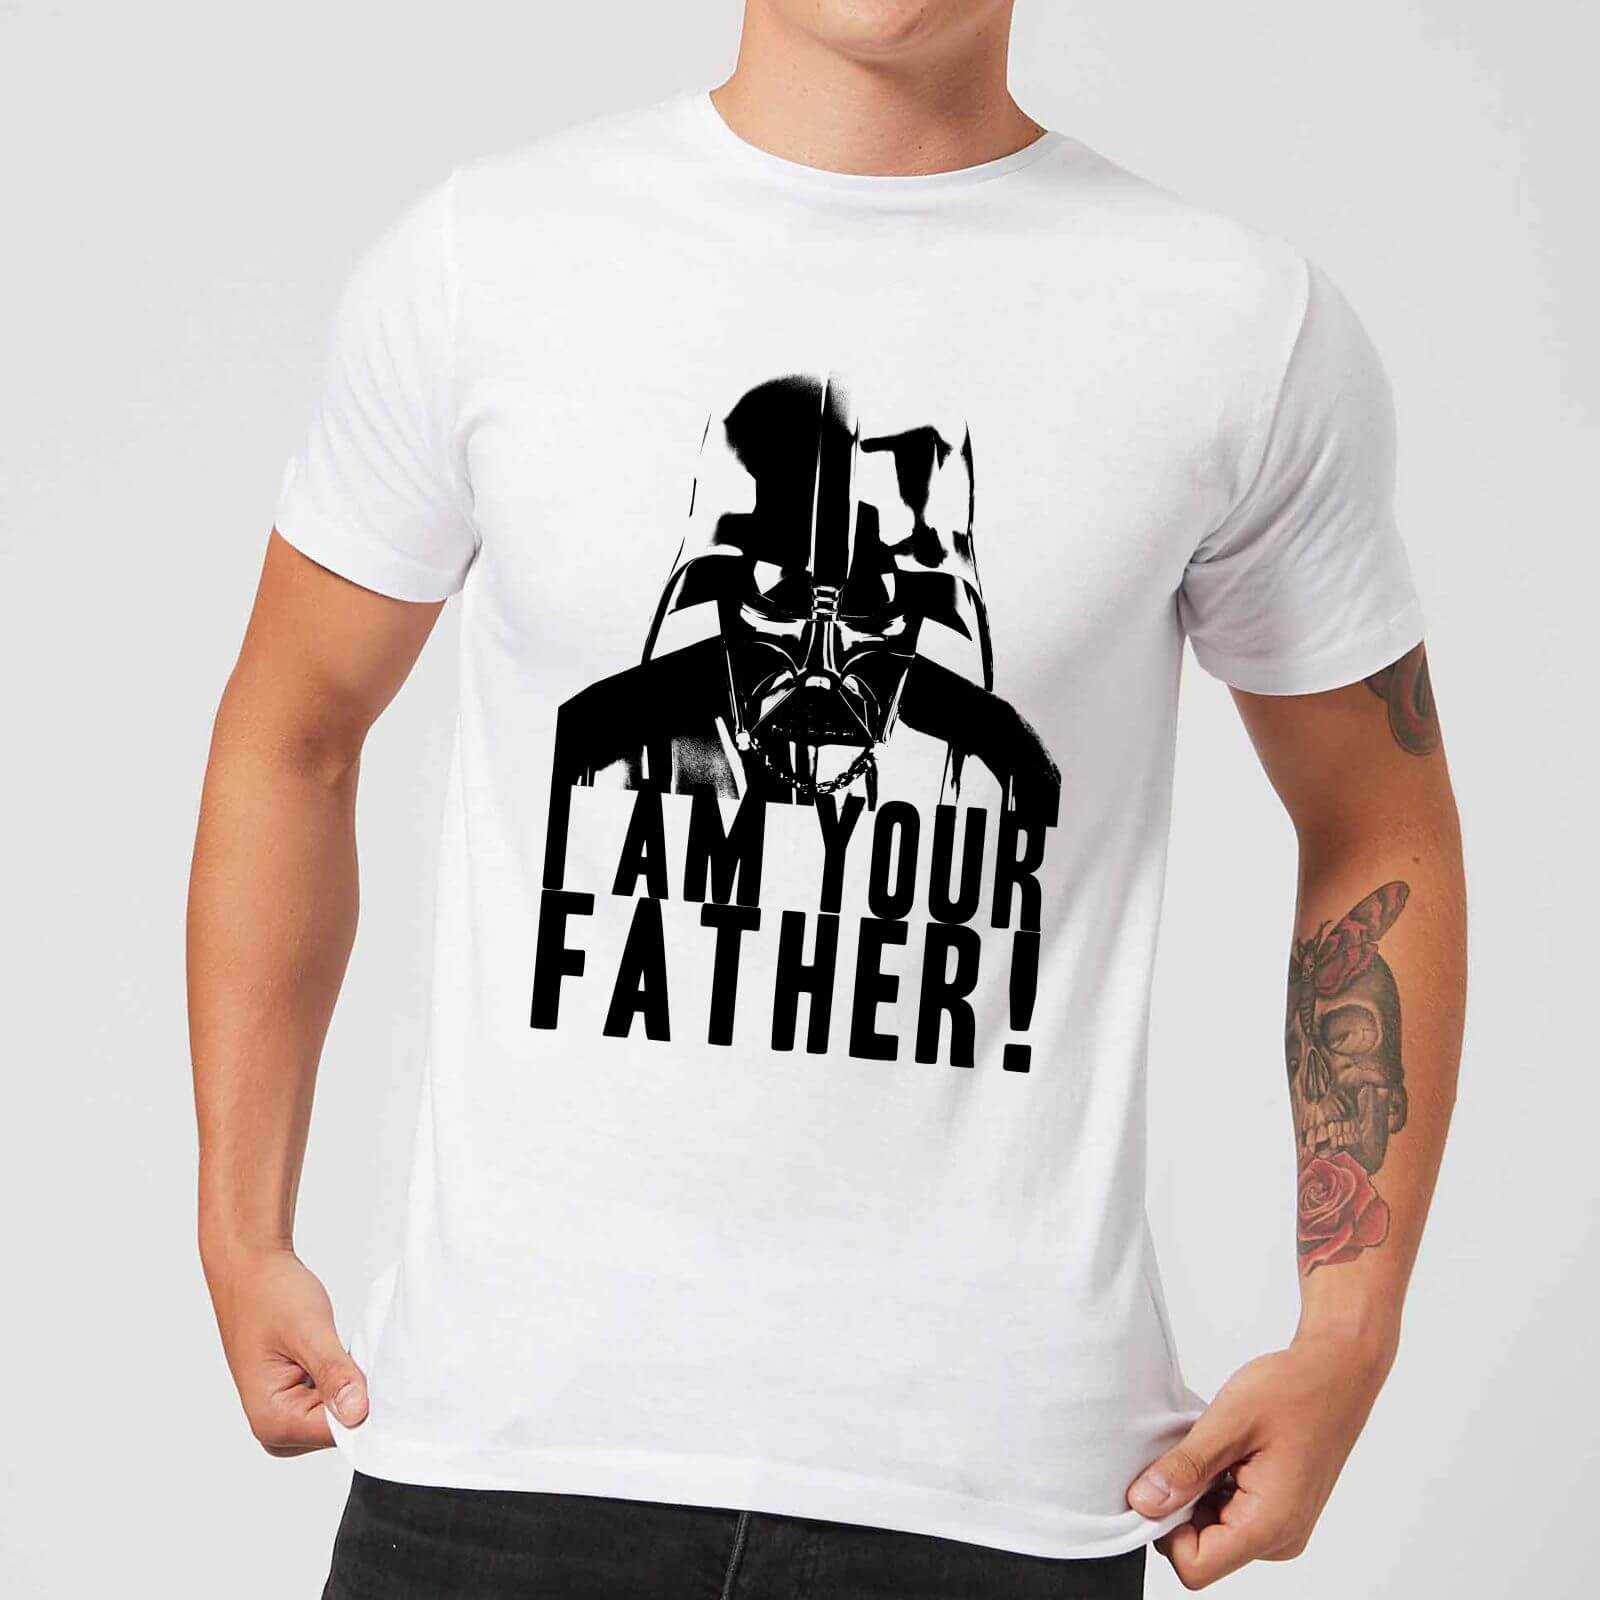 OfferteWeb.click 31-t-shirt-star-wars-darth-vader-i-am-your-father-confession